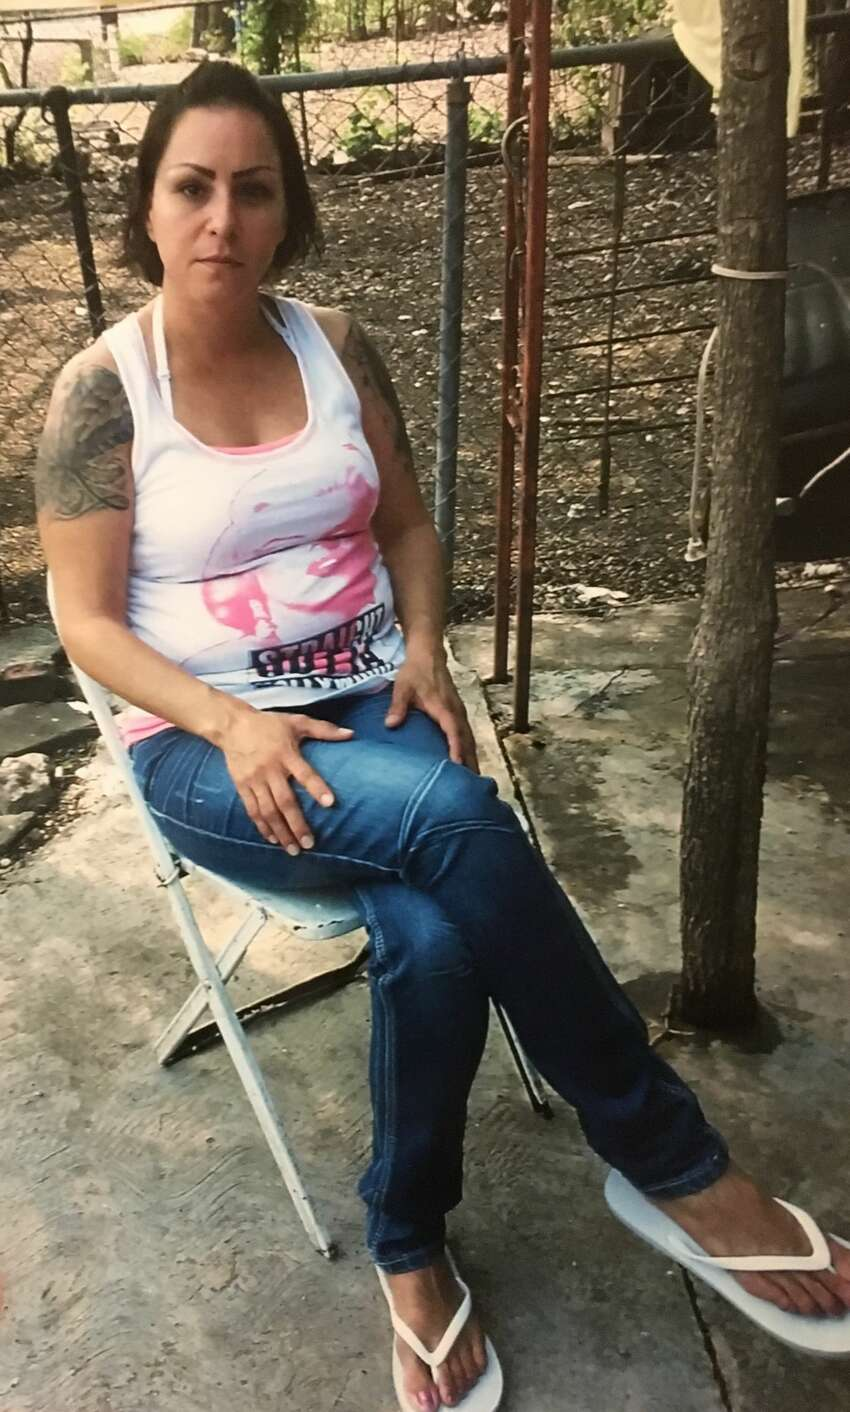 The remains of Norma Pacheco, 39, were found in the Government Canyon area in April.